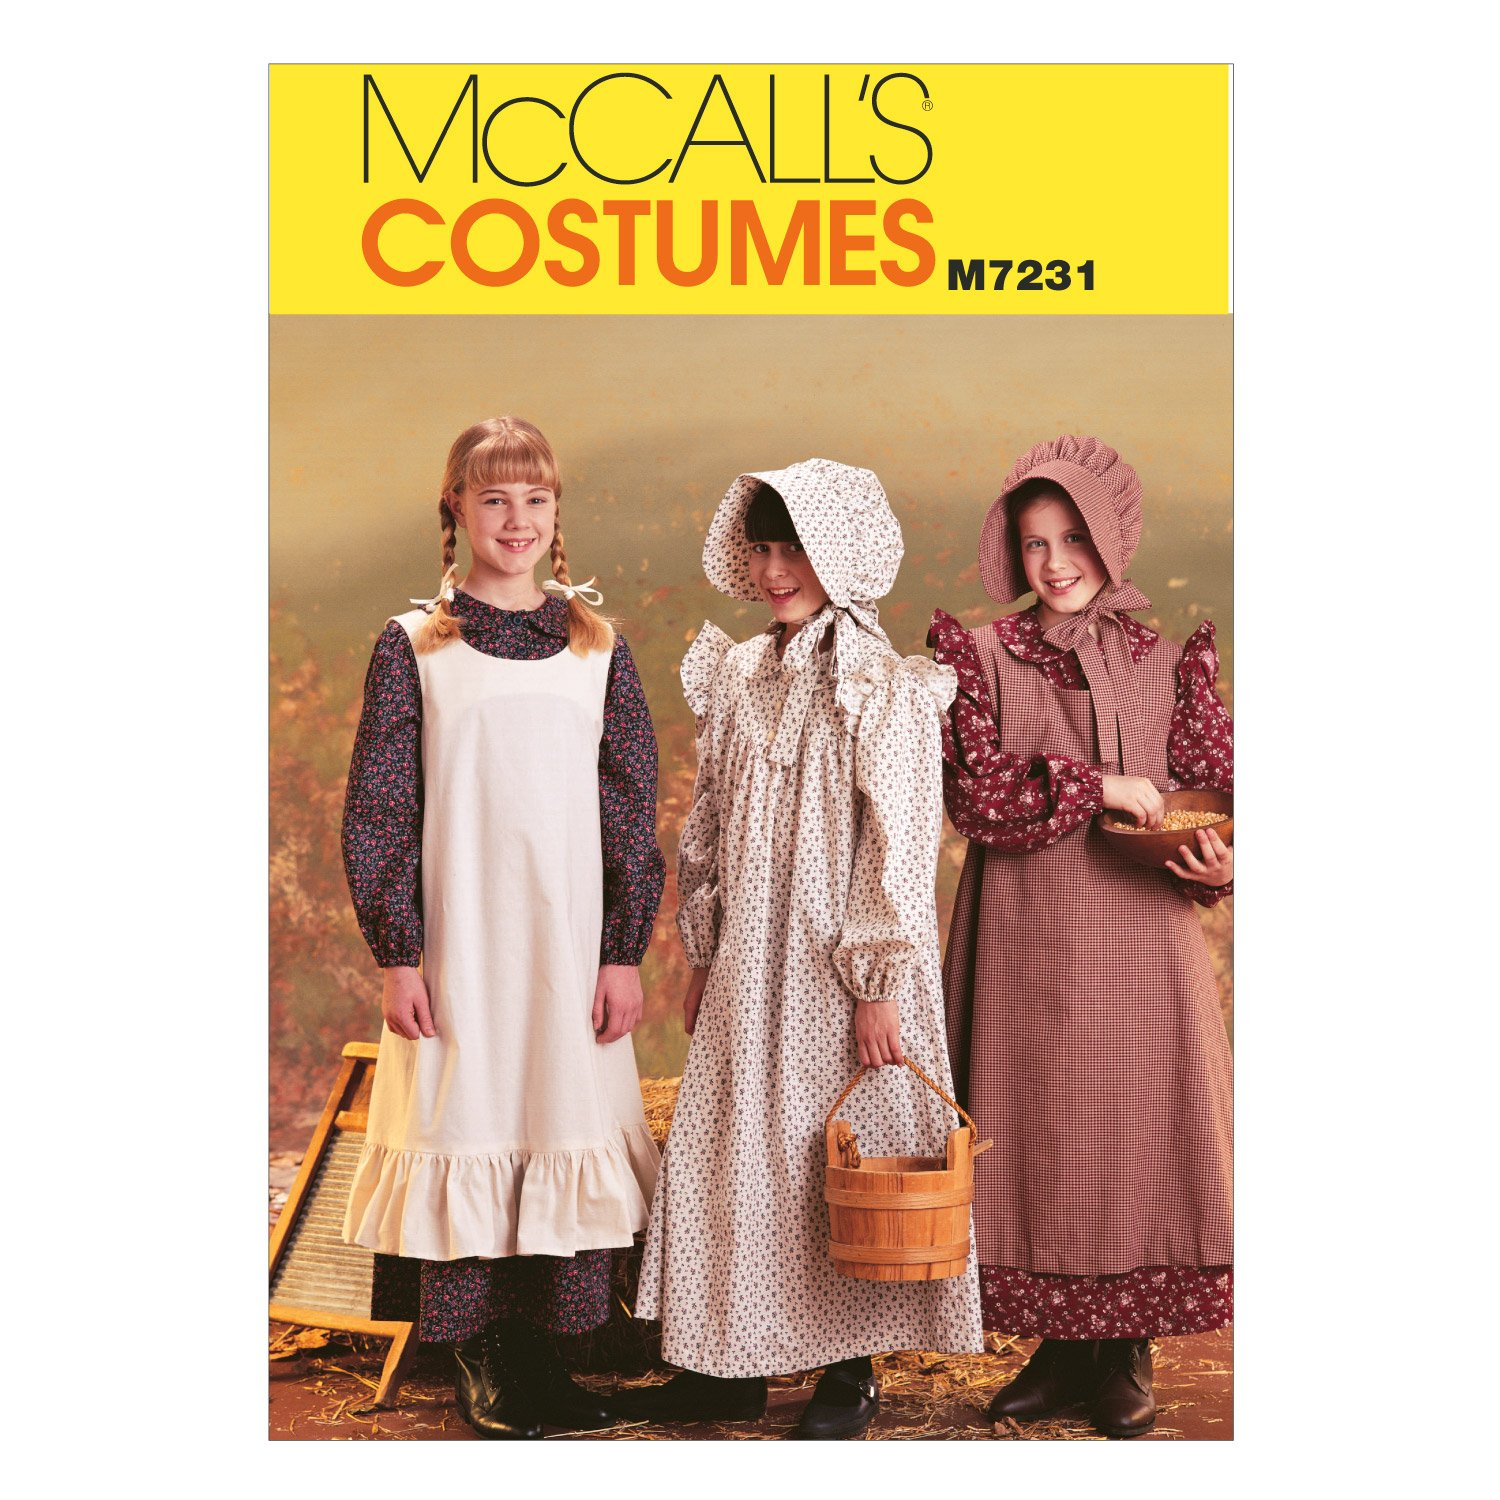 McCall's Patterns M7231 Girls' Pioneer Costumes Sewing Template, LRG (14-16) McCall Pattern Company M7231LRG